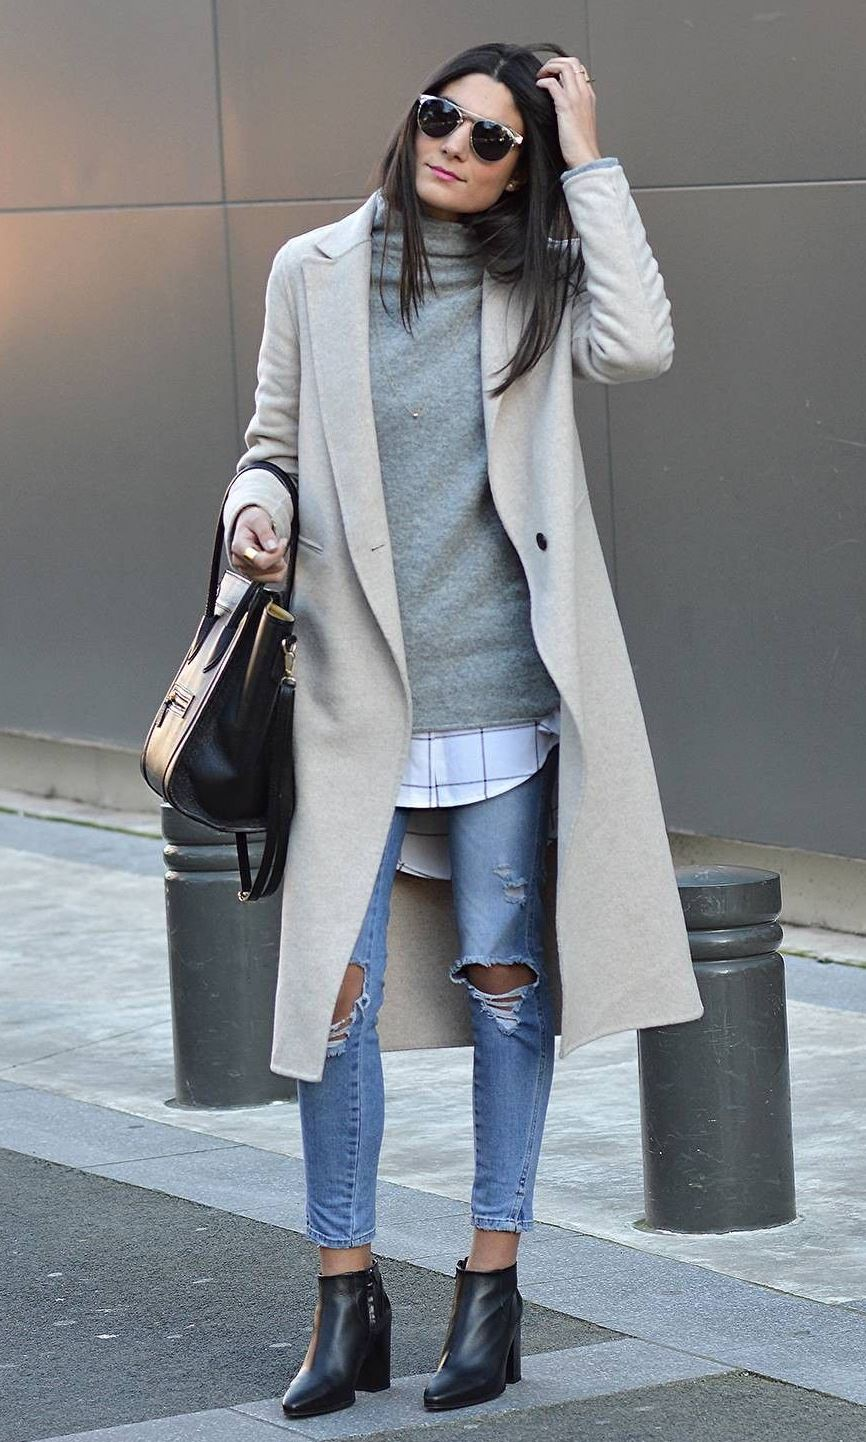 amazing winter outfit / coat + sweater + shirt + bag + ripped jeans + boots